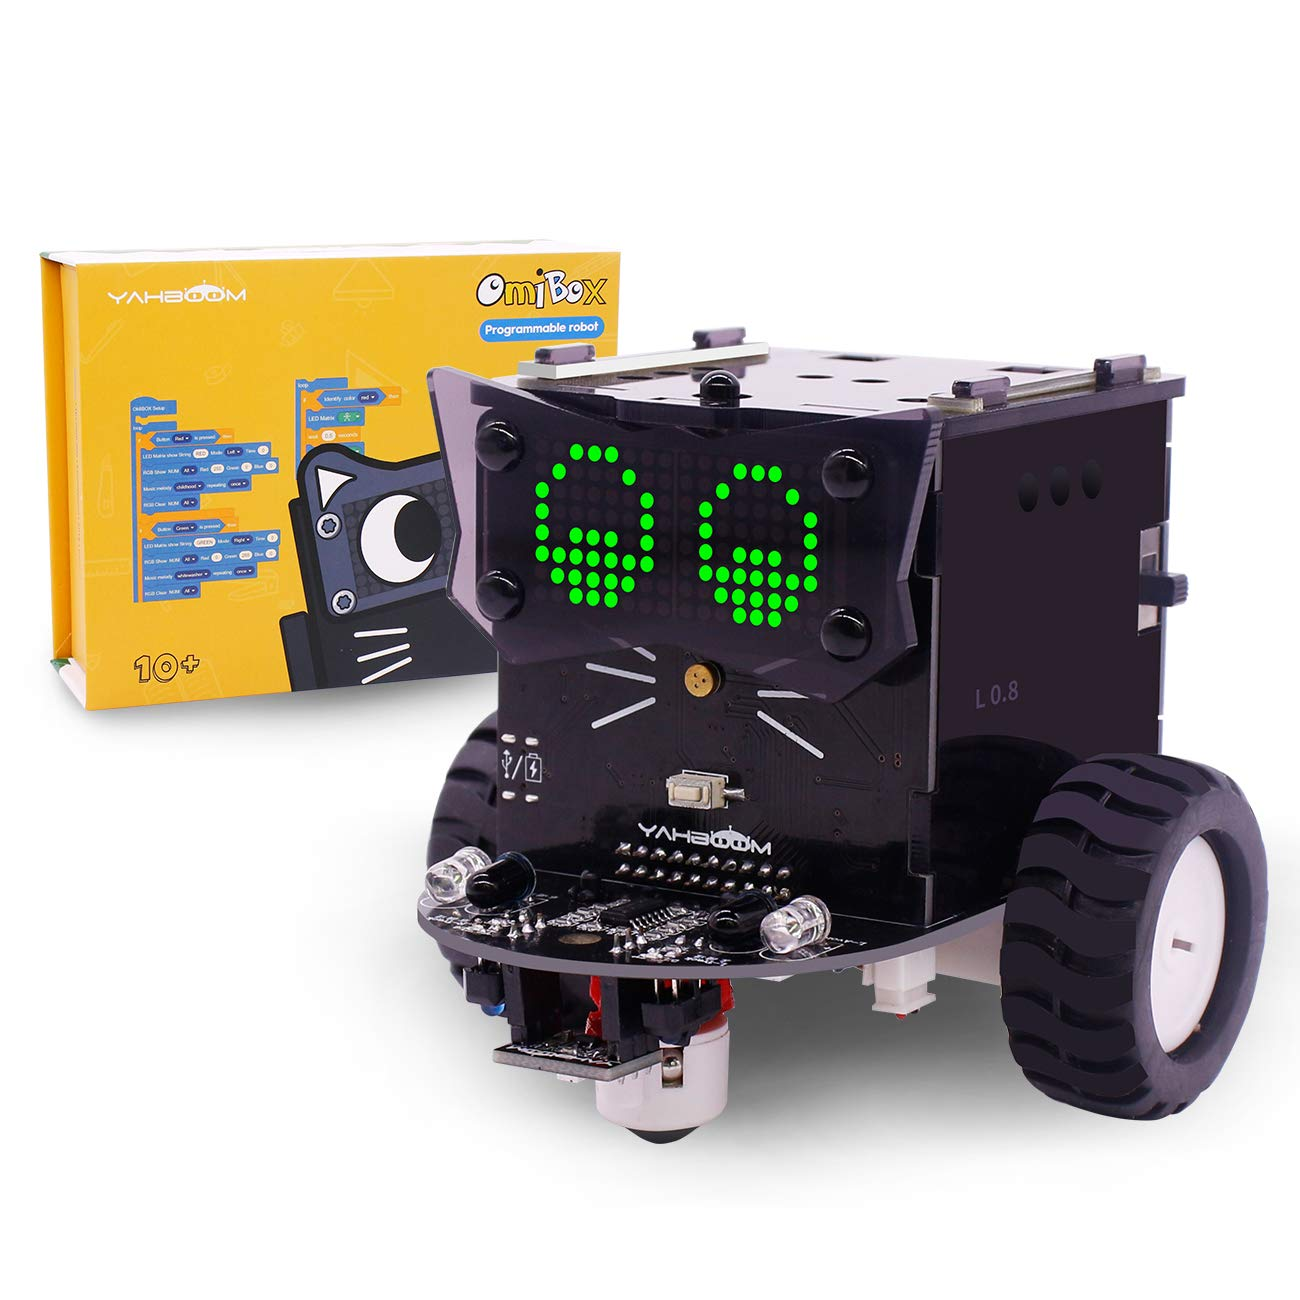 Yahboom Robot Kit Based on Arduino / Scratch 3.0 for Kids to Learn Coding STEM Education Science Electronics DIY Toy Car with Tutorial (Omibox)